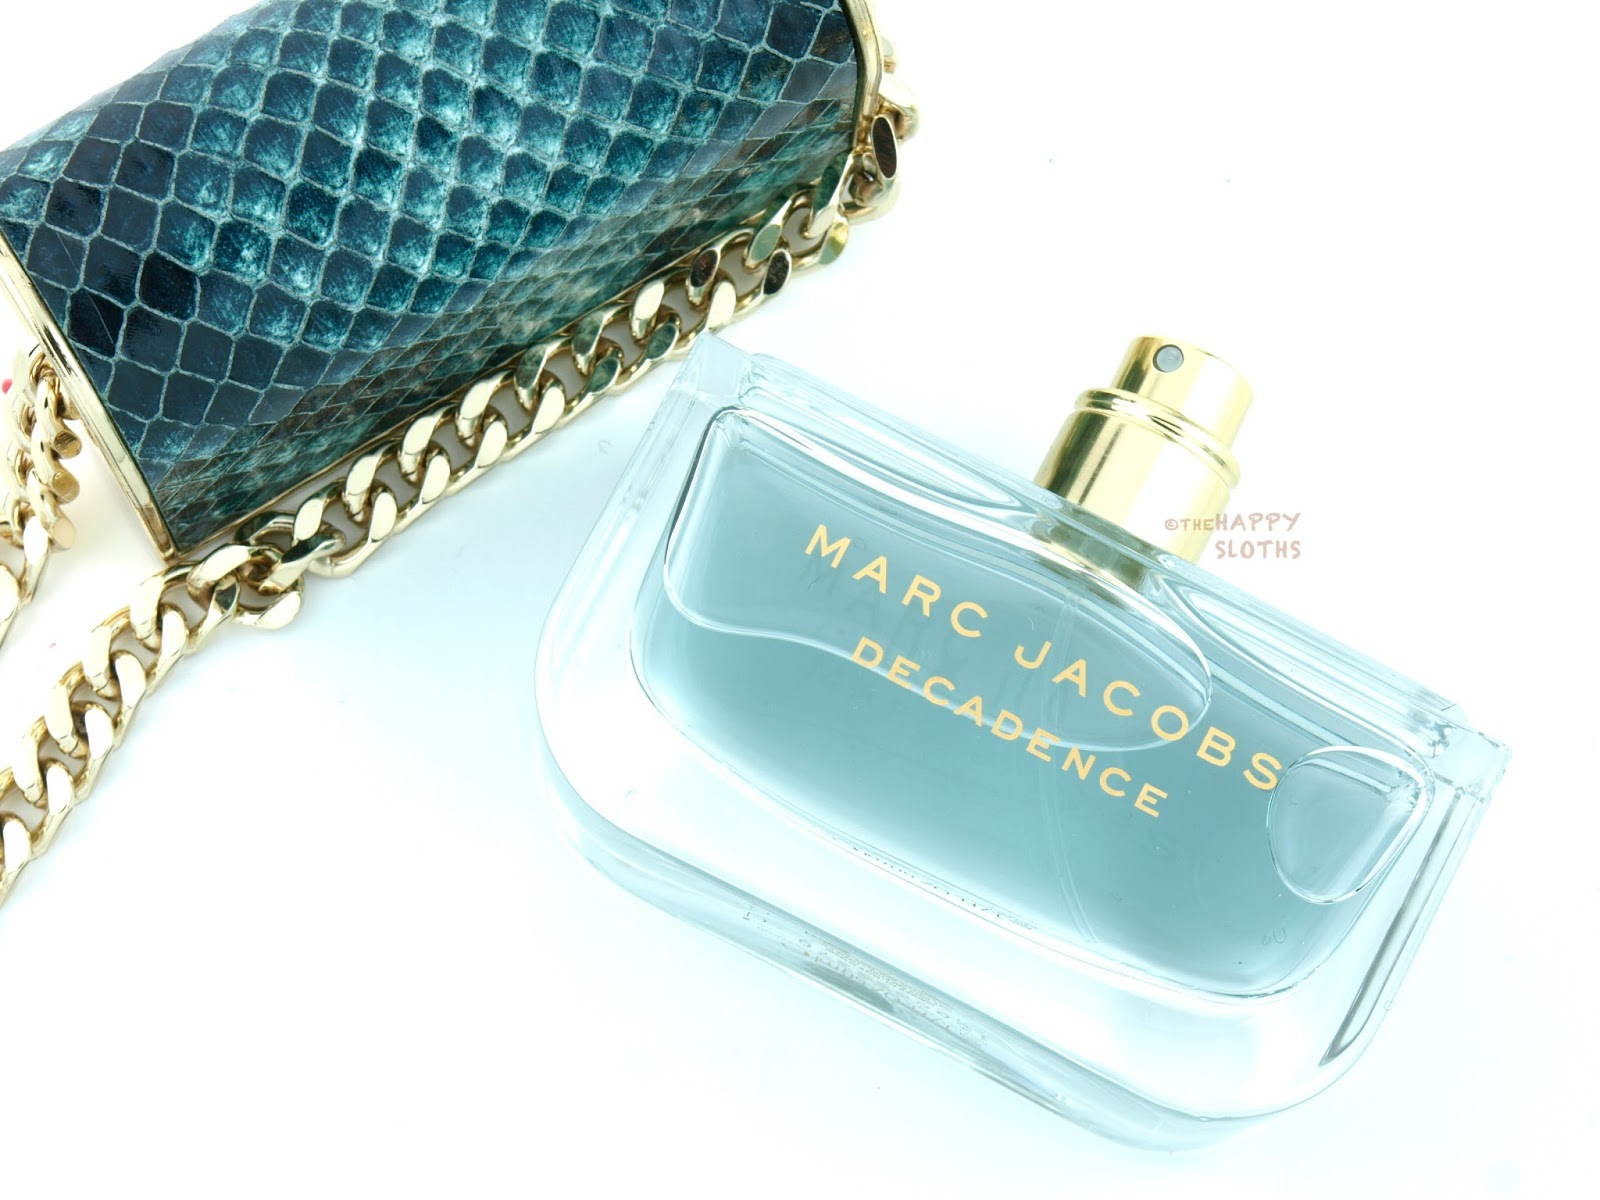 4a1a43093 ... Eau de Parfum  Review. Marc Jacobs Divine Decadence